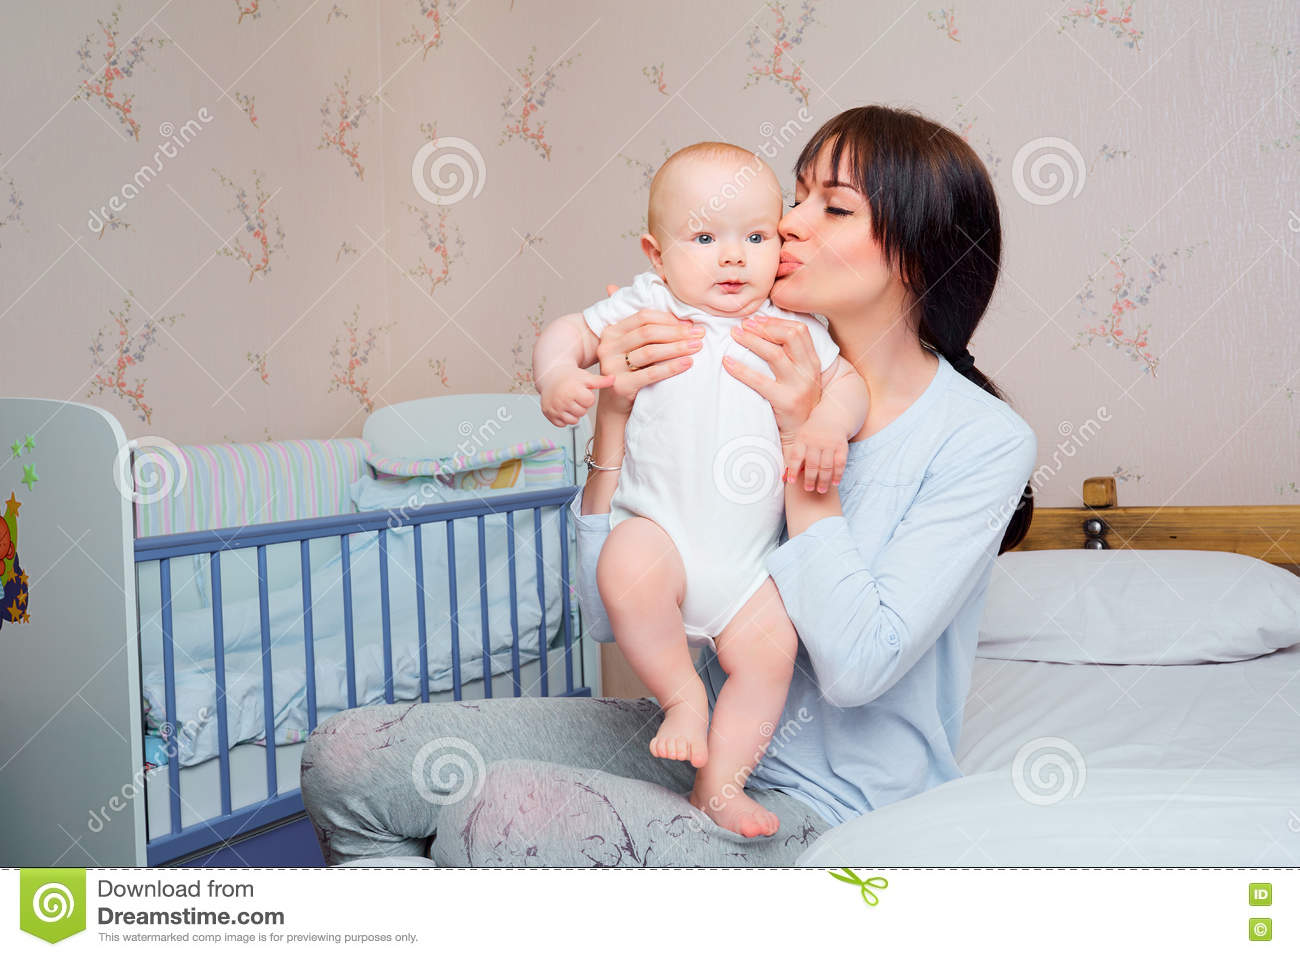 Baby bed next to mom - Mom Pajamas Tenderly Kisses The Baby Boy On The Bed In The Room